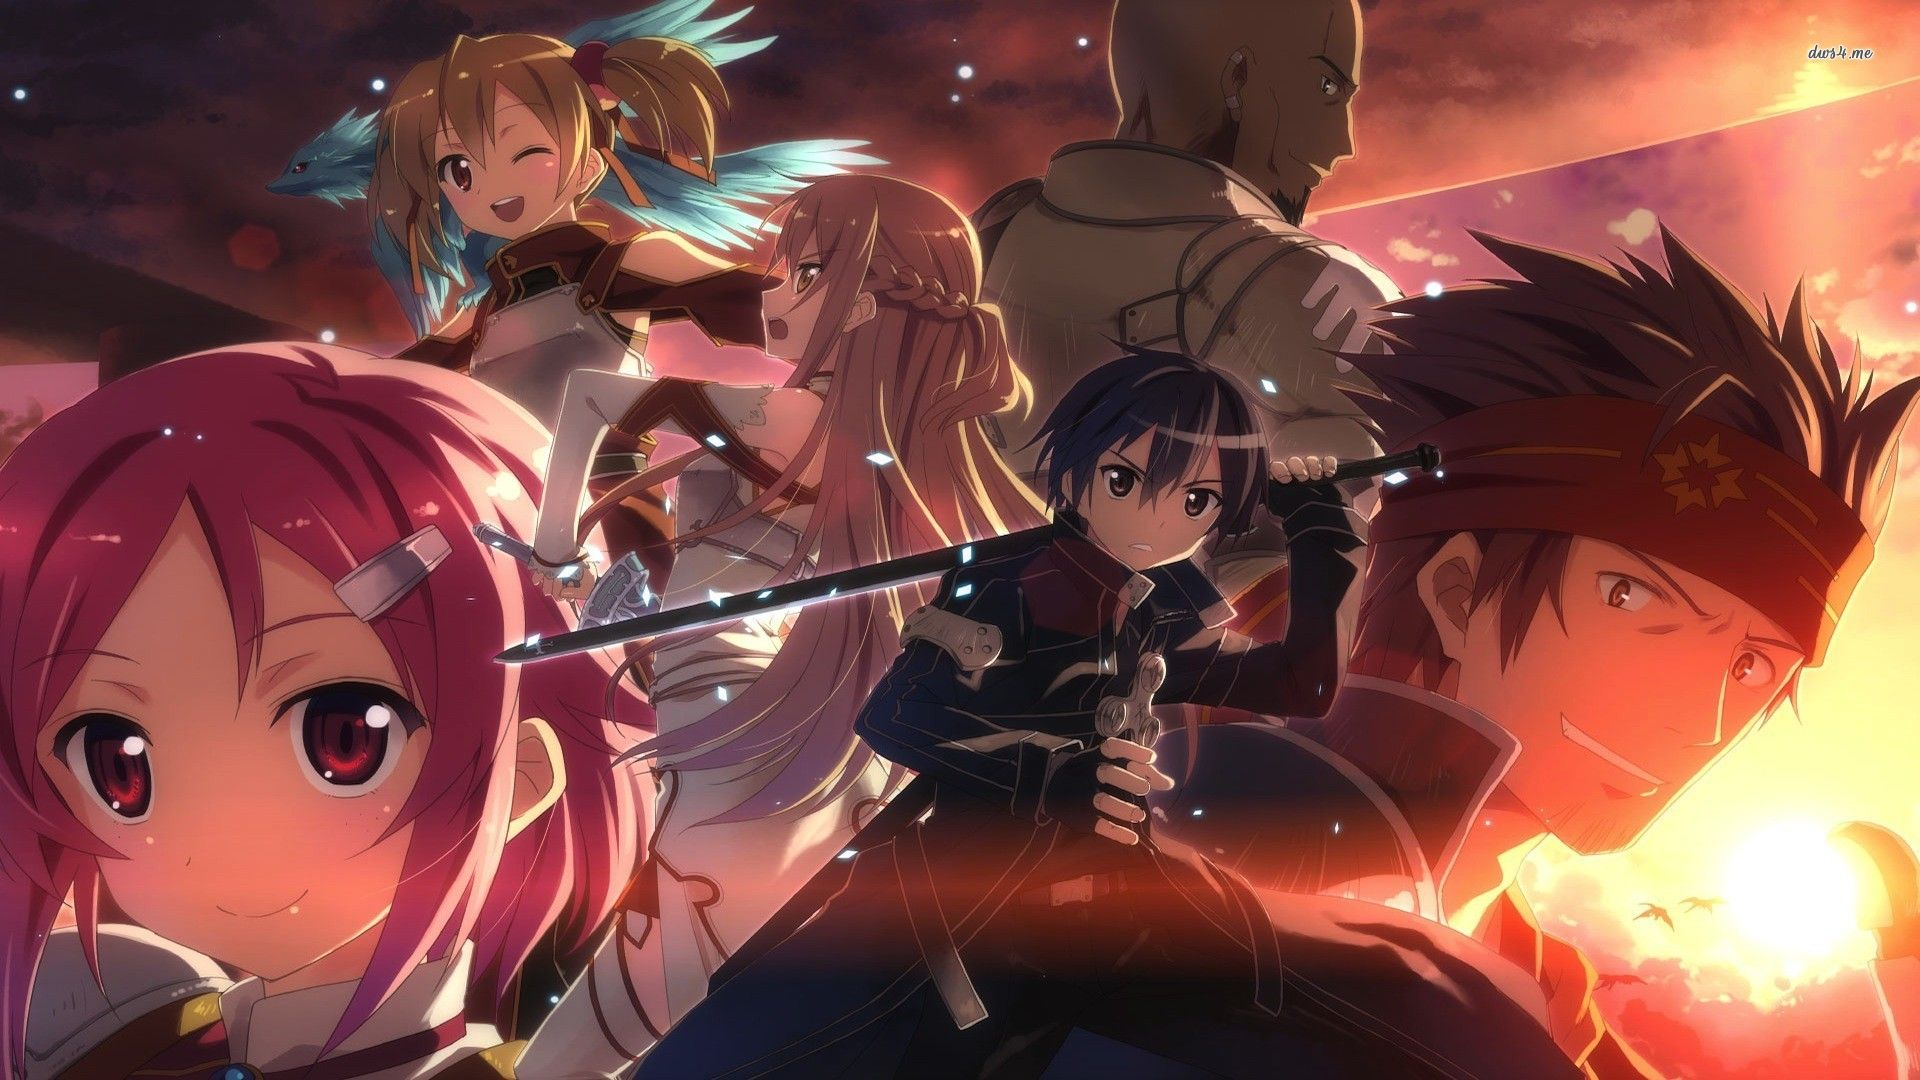 2450 Sword Art Online Hd Wallpapers And Background Images 4k Ultra Hd 2160p Anime Keywords Wallpapers Sword Art Online Sword Art Online Ilustrasi Grafis Art